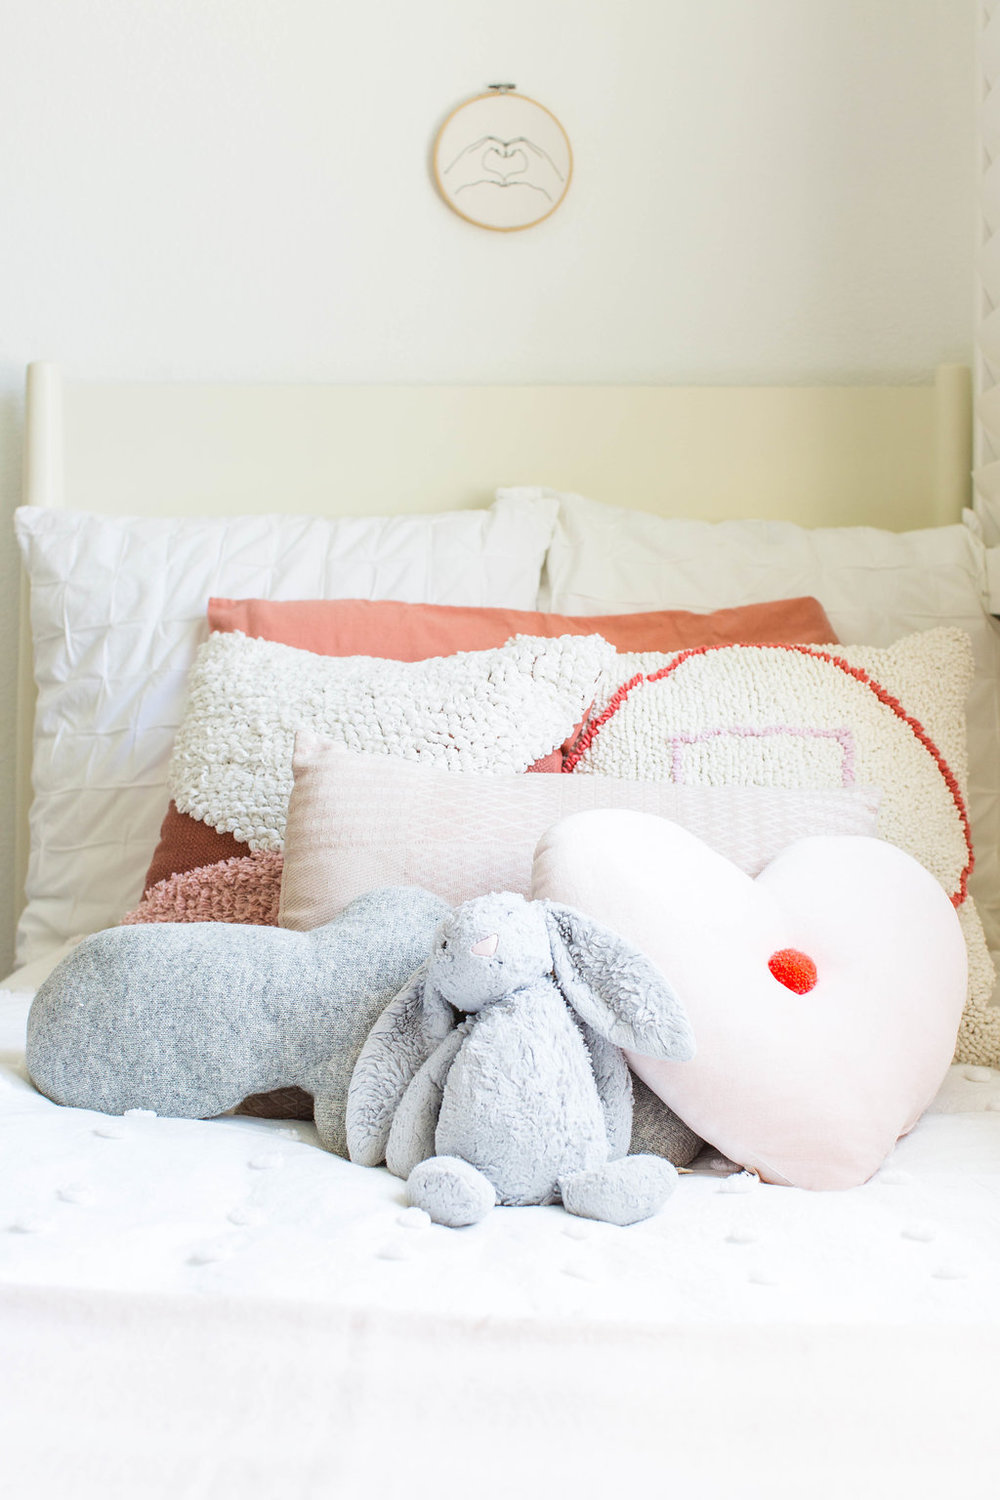 bed  |  white pom duvet  |  blush throw  | pink accent pillows & embroidery art (discontinued from target) |  cloud pillow (similar) |  heart pom pillow  |  bunny